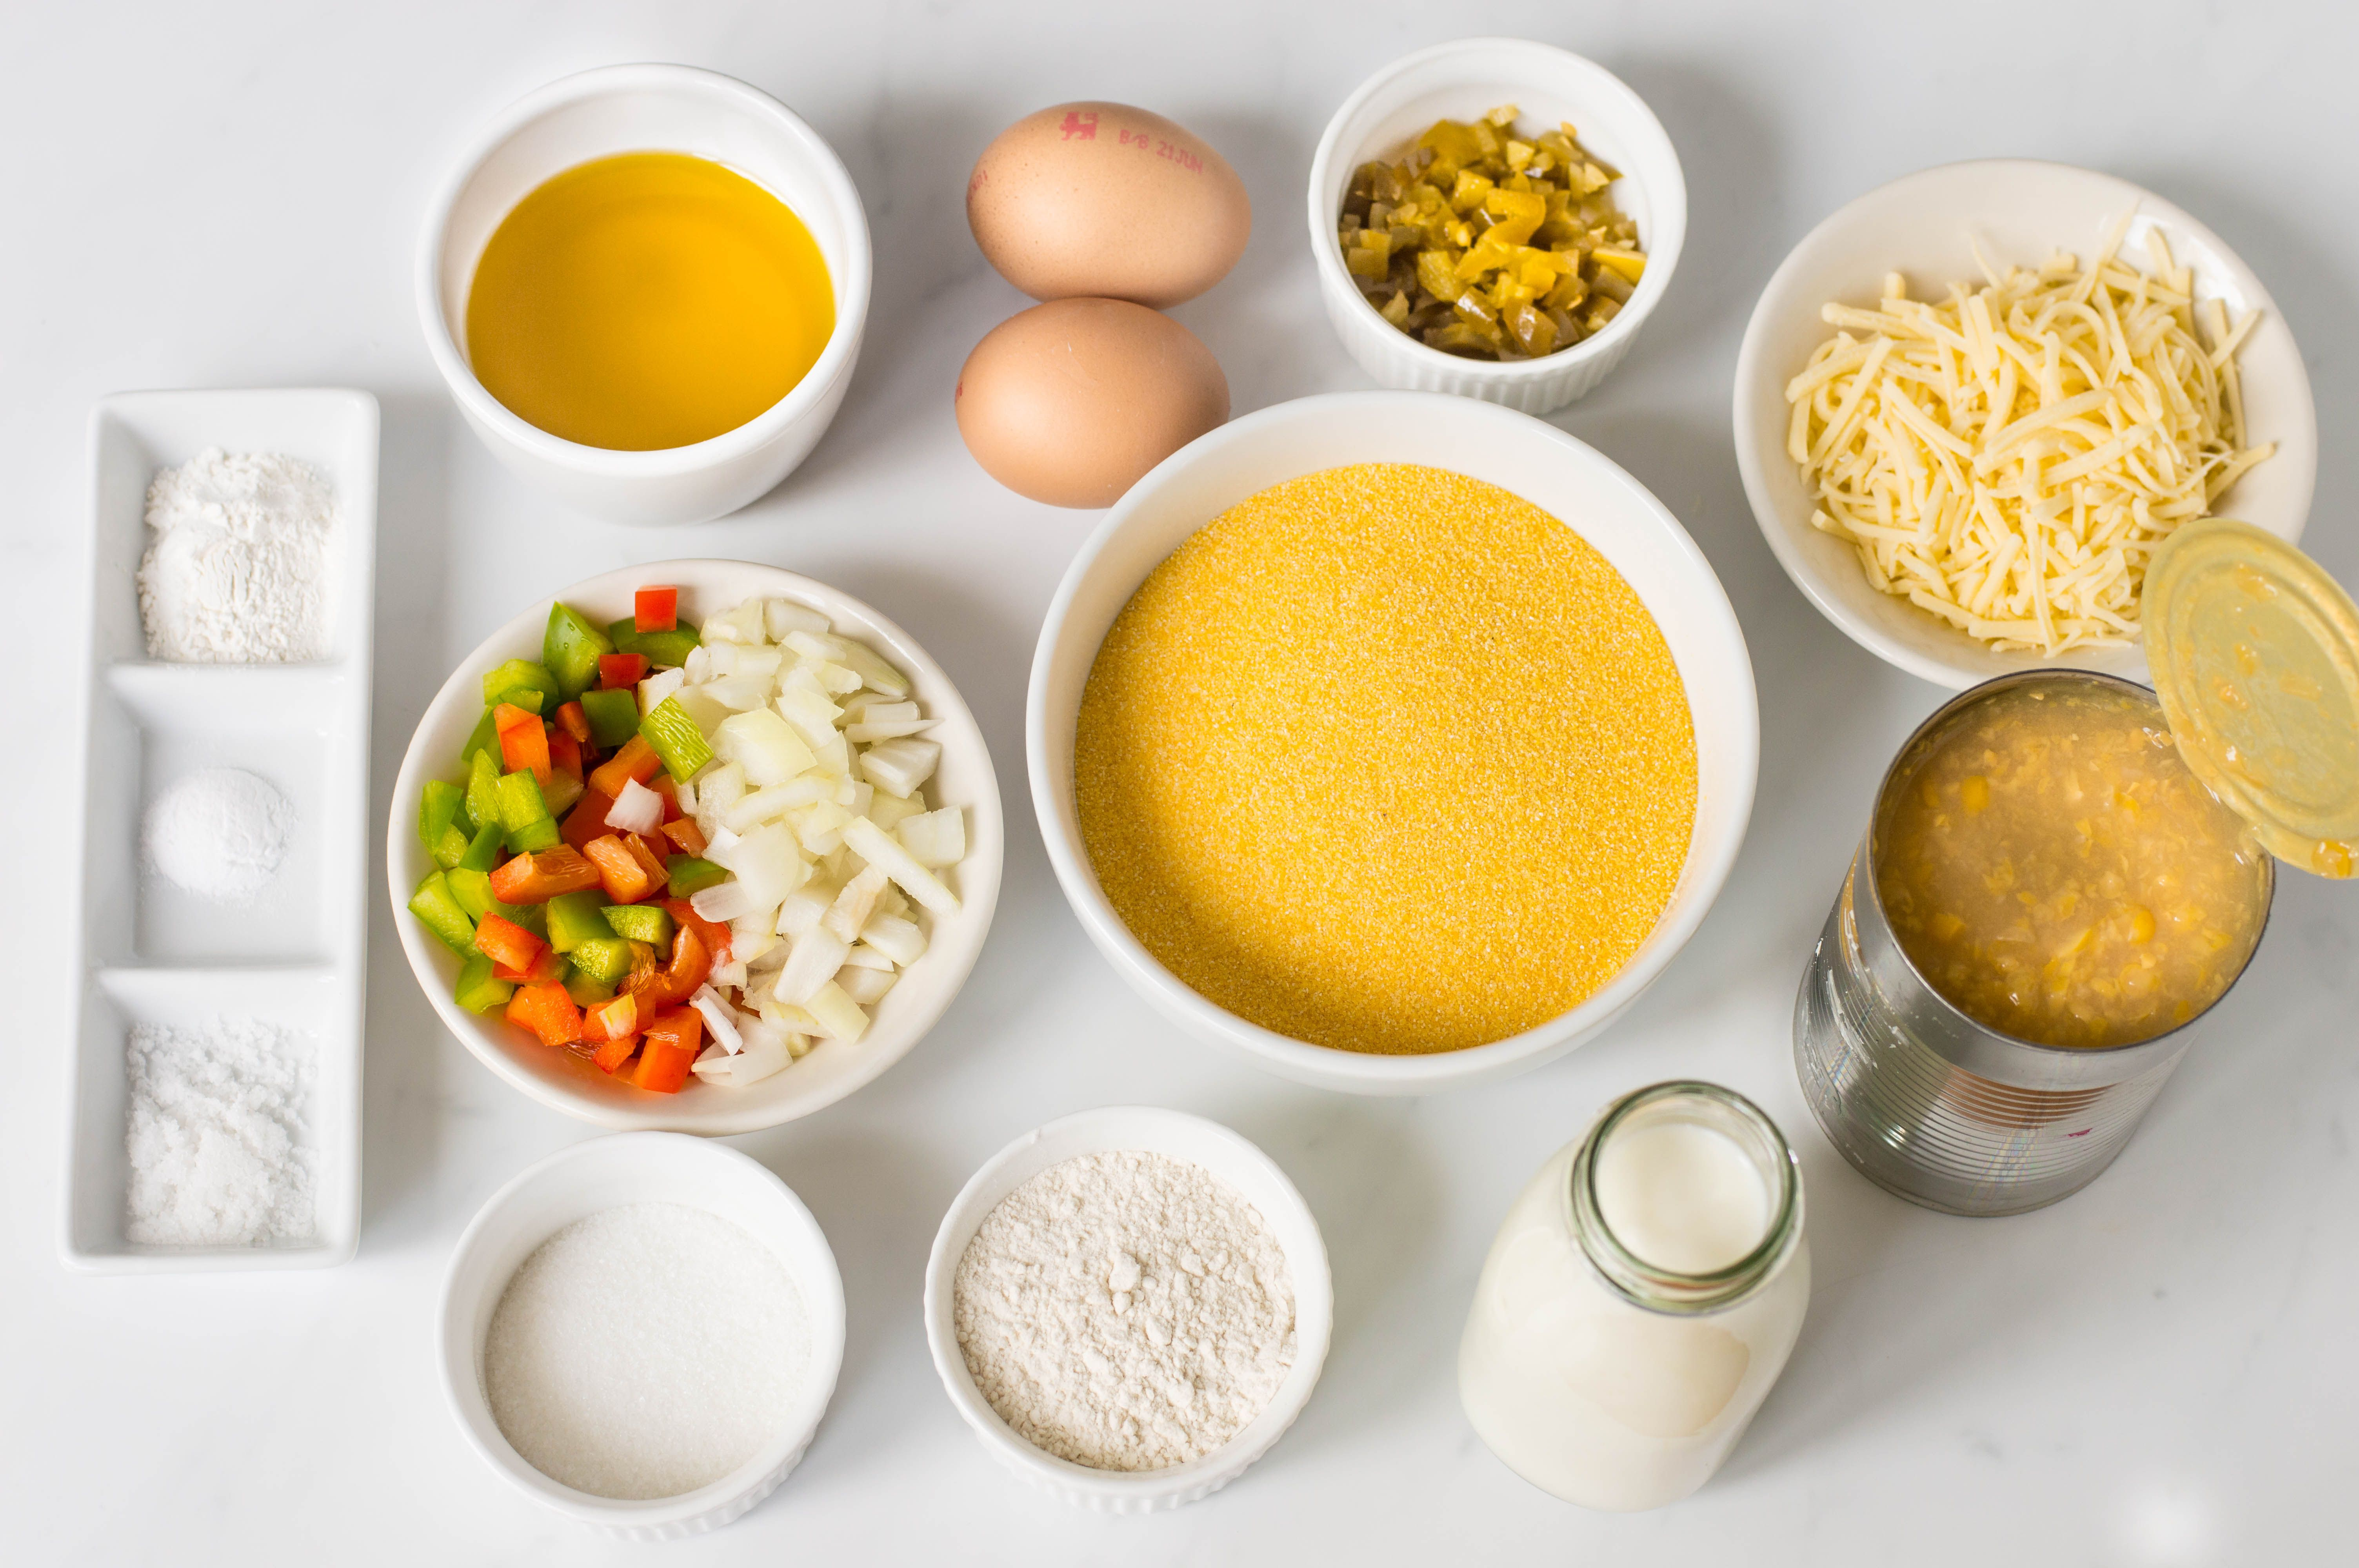 Ingredients for Mexican Cornbread